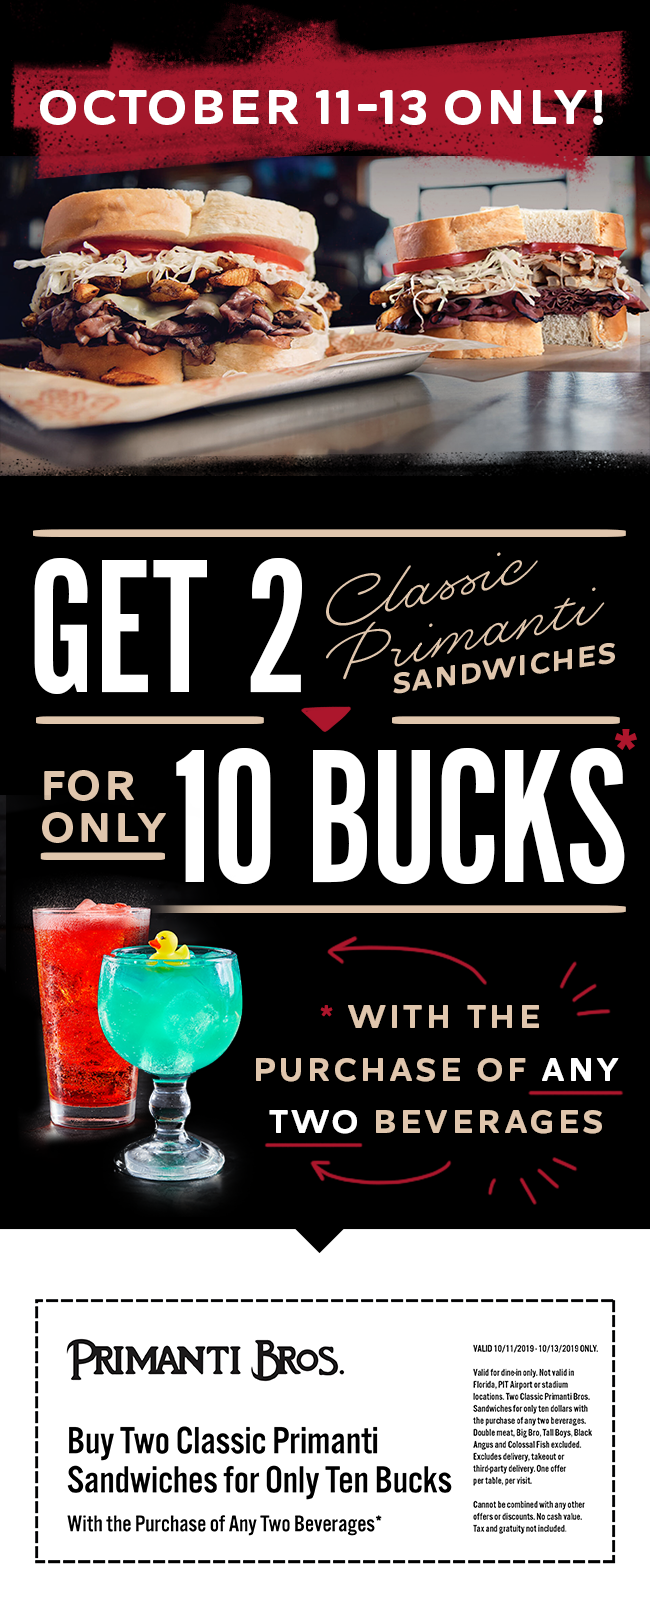 Want 2 sandwiches? Click 'Download Image' for Deal!.